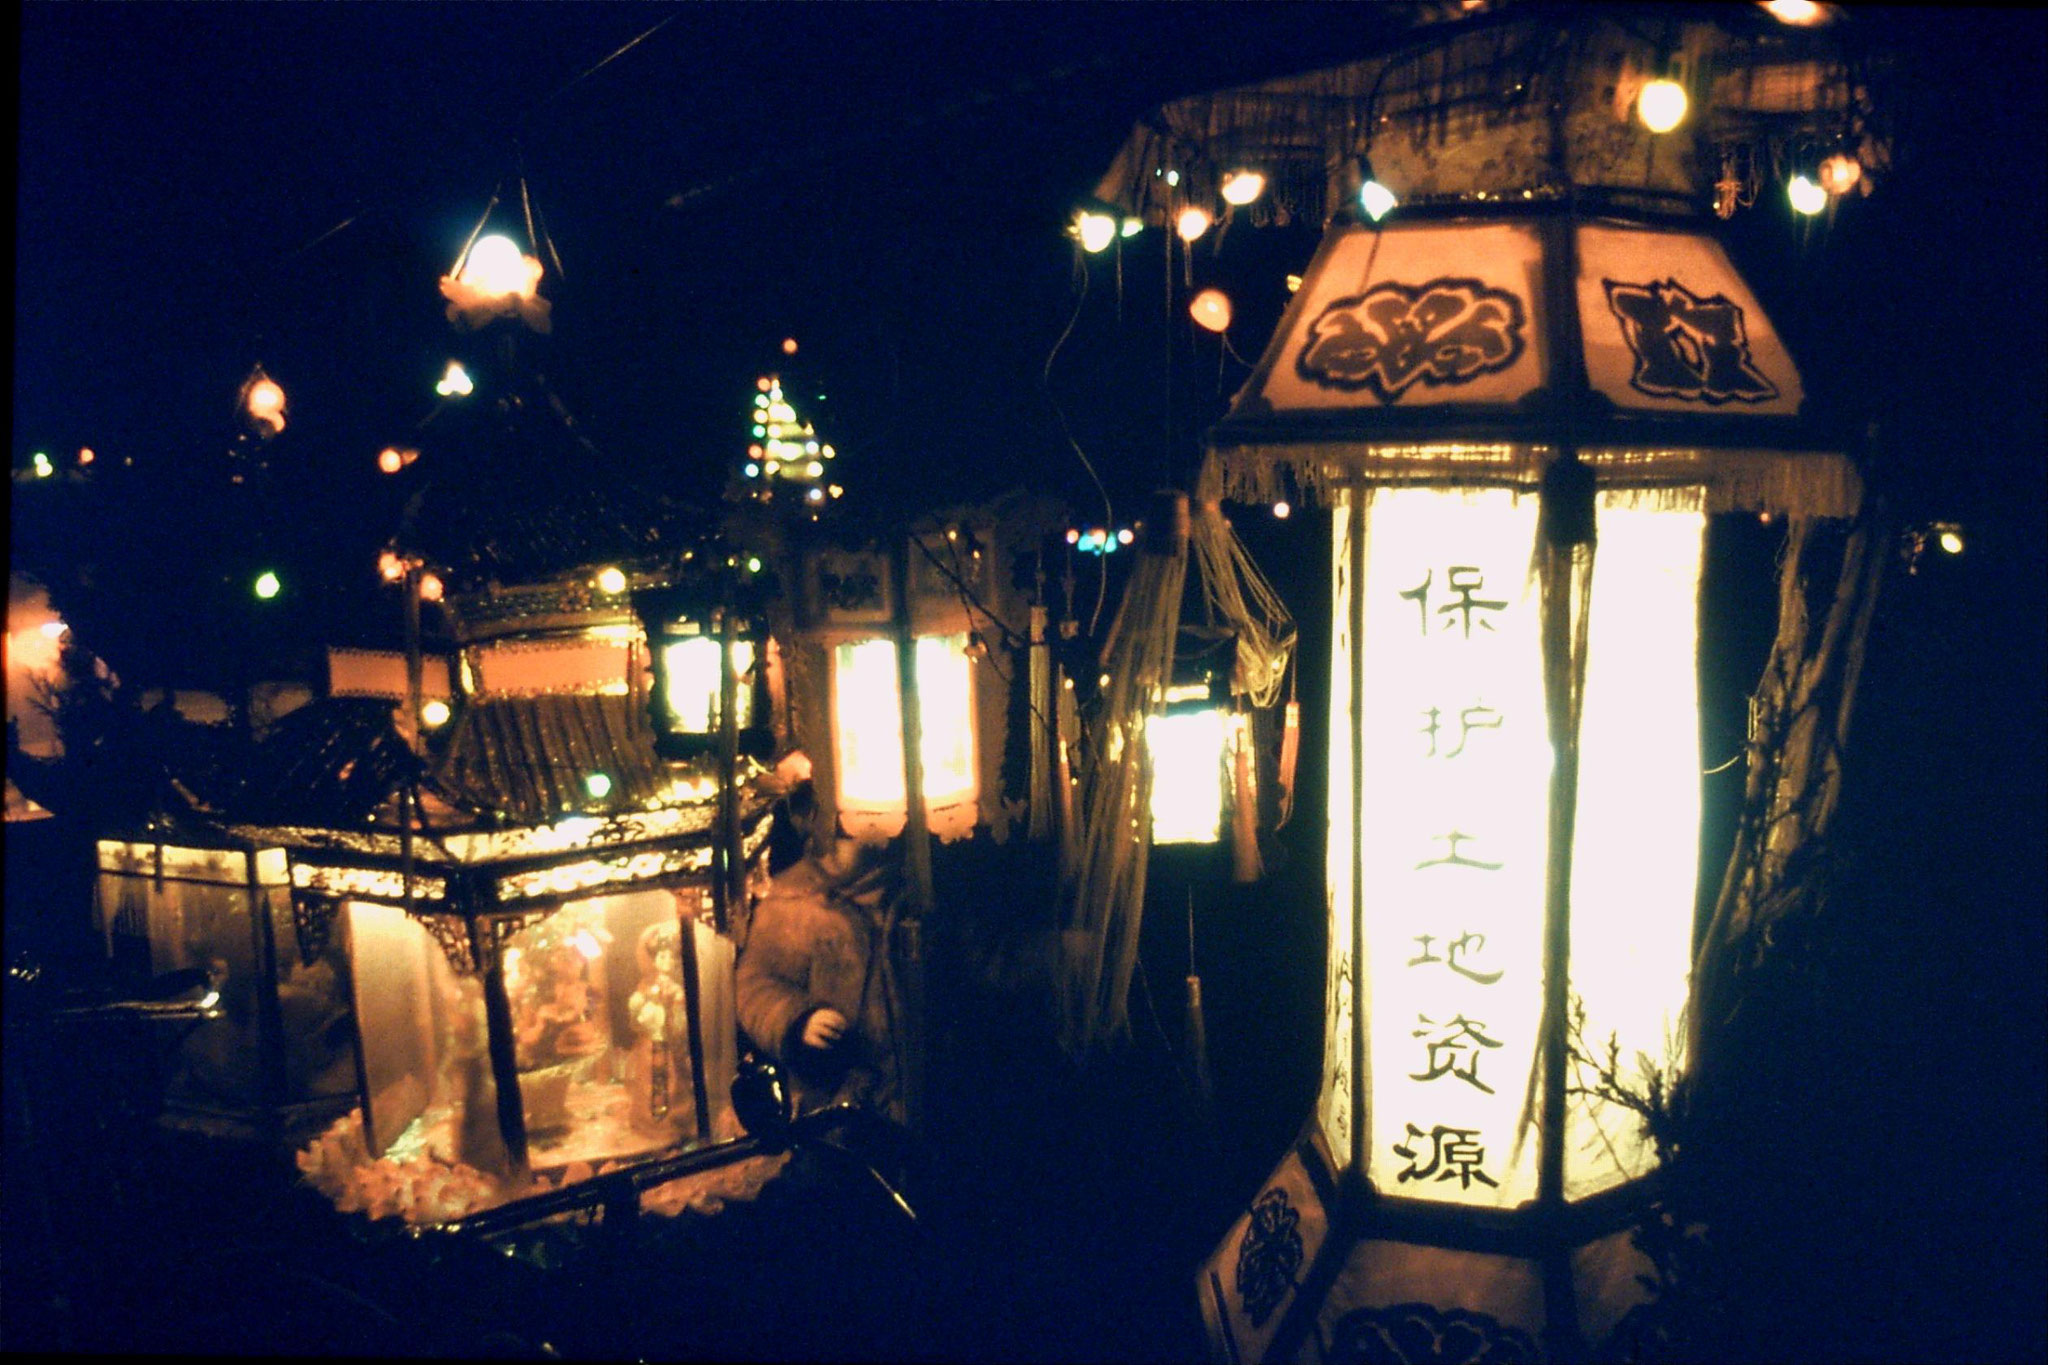 20/2/1989: 30: Qufu New Year lanterns